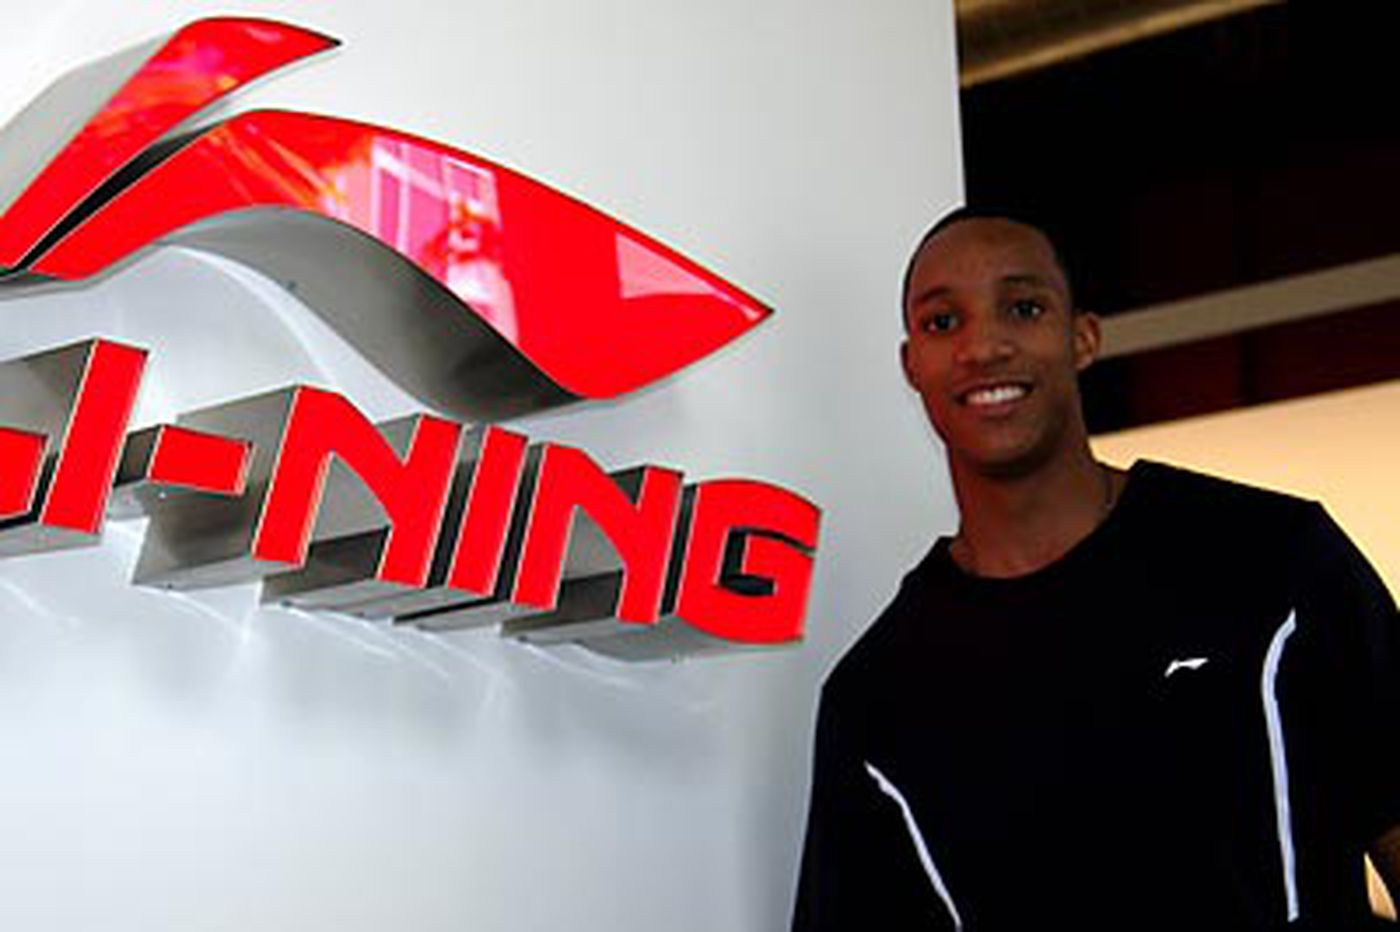 Chinese company Li-Ning signs Sixers' Evan Turner to endorsement deal